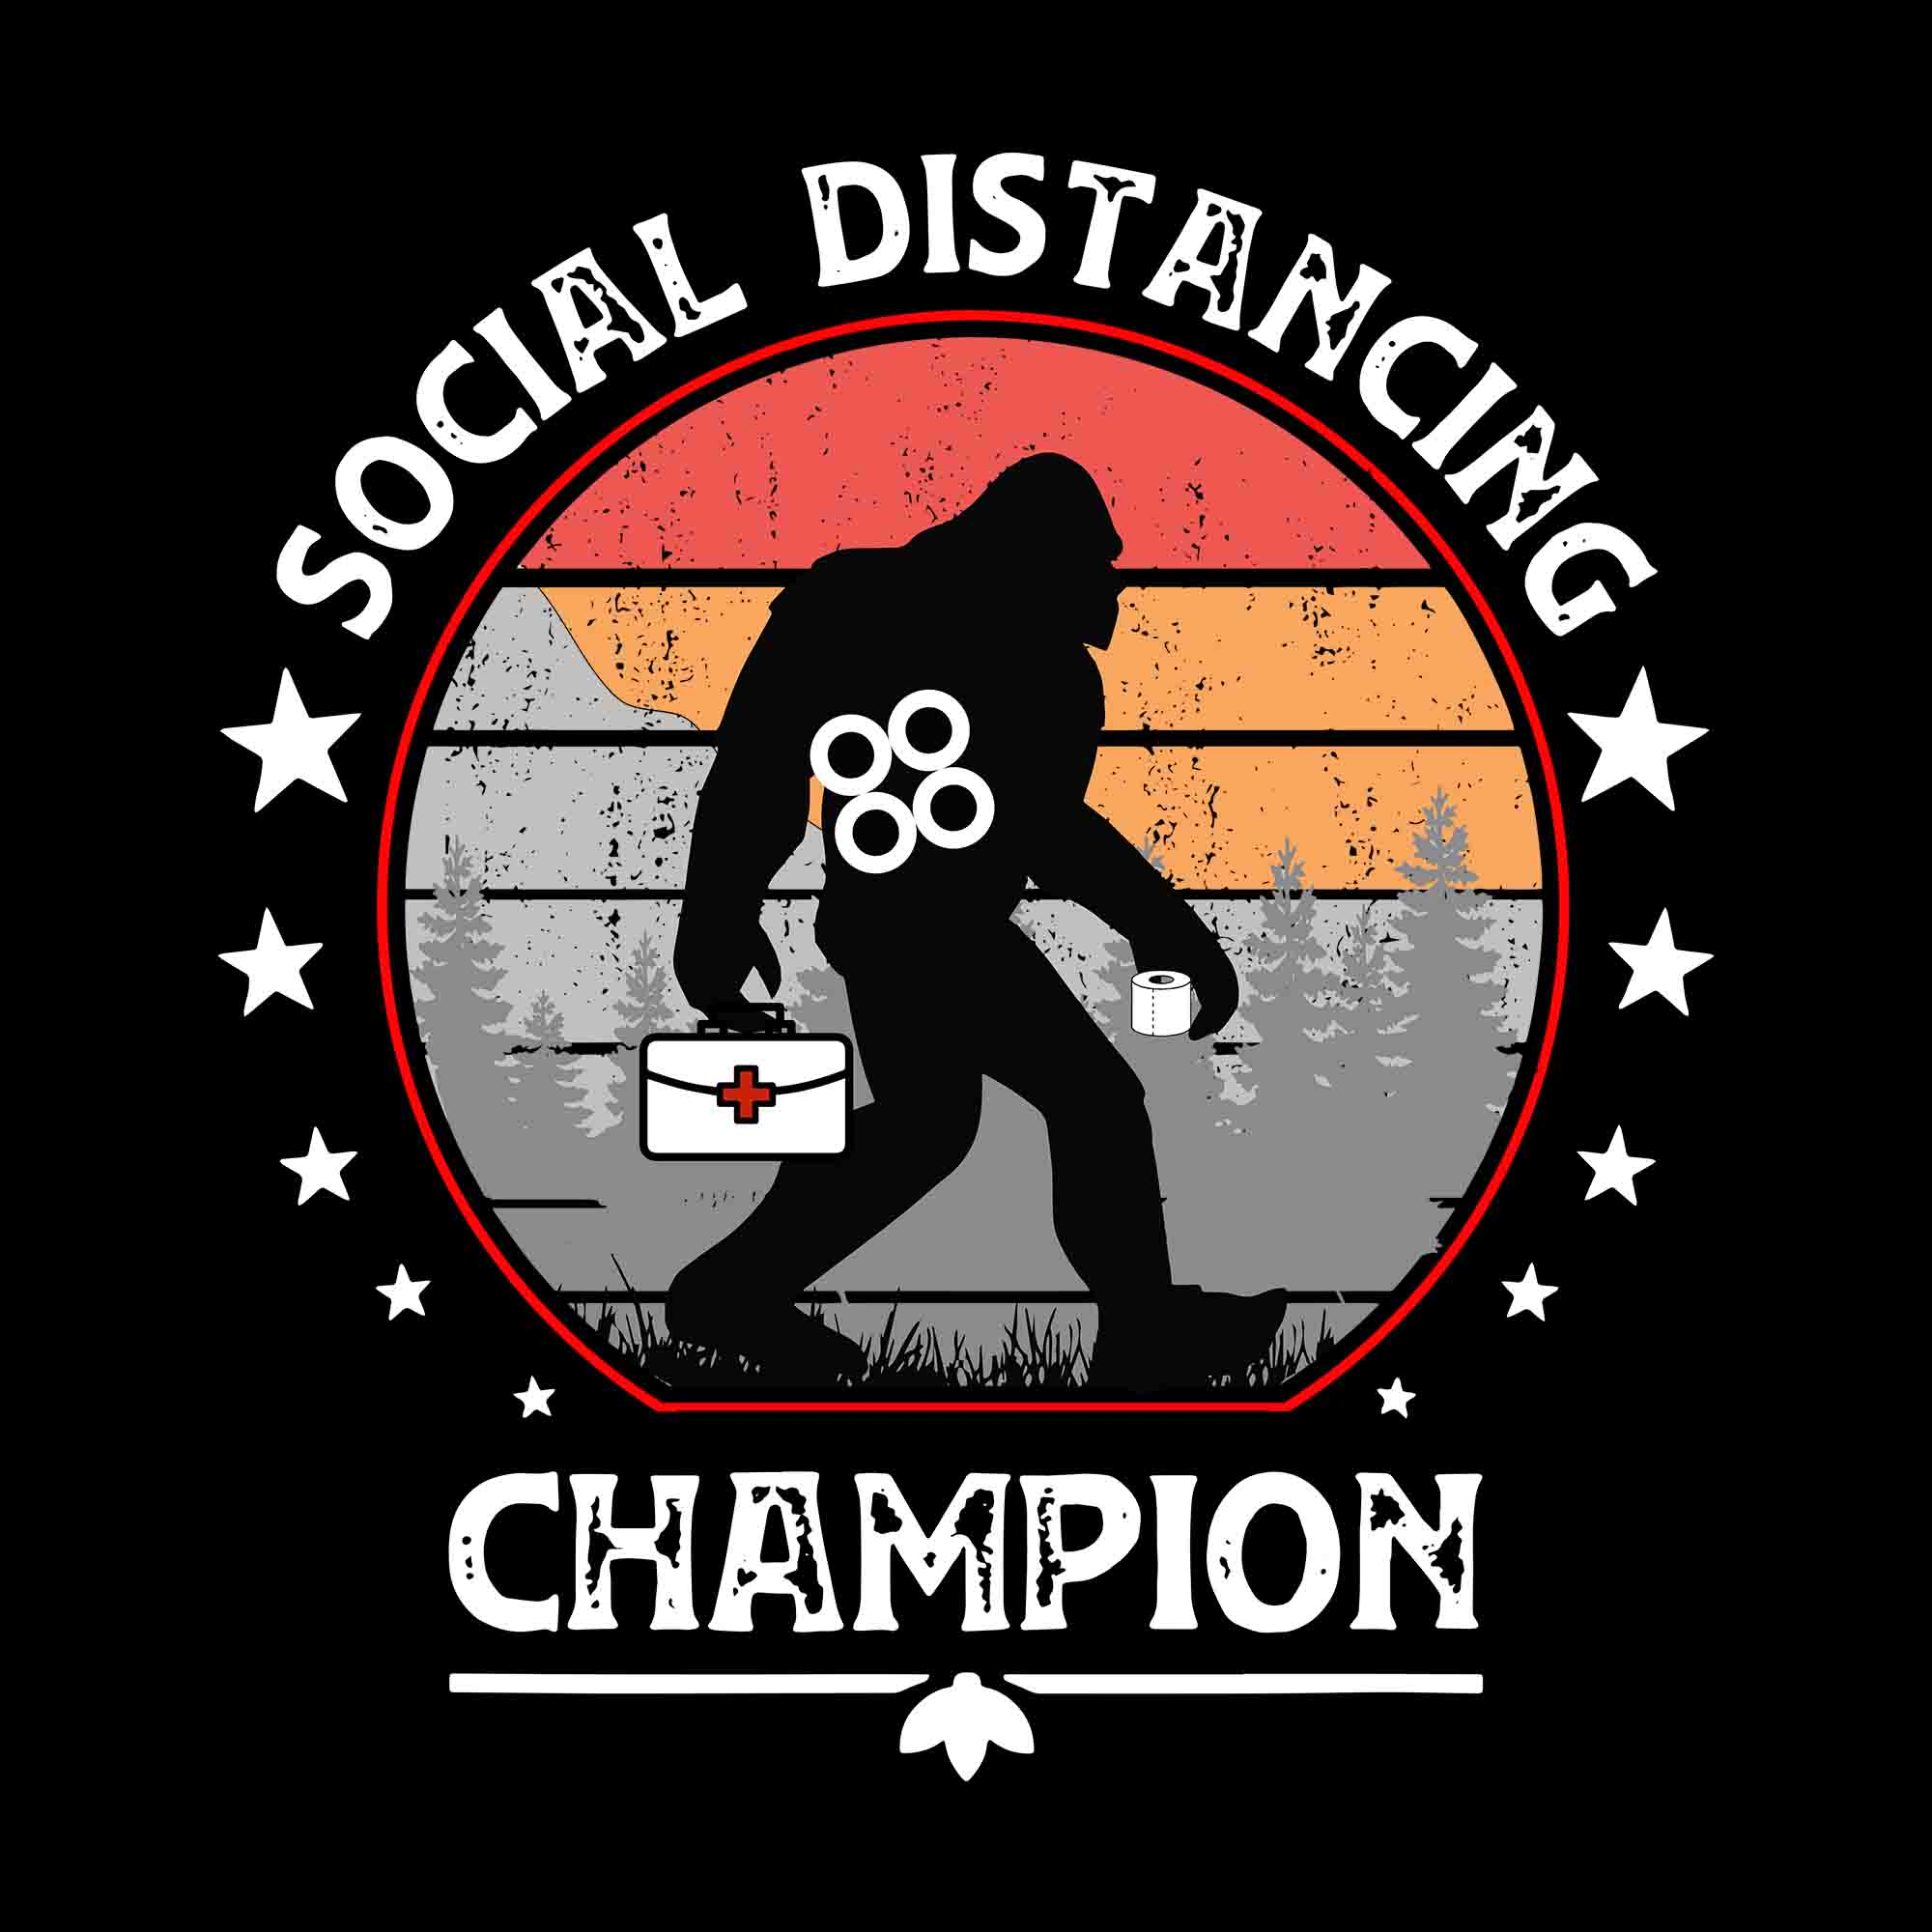 Social distancing champion svg, social distancing champion vintage svg, social distancing champion, vintage bigfoot and toilet paper